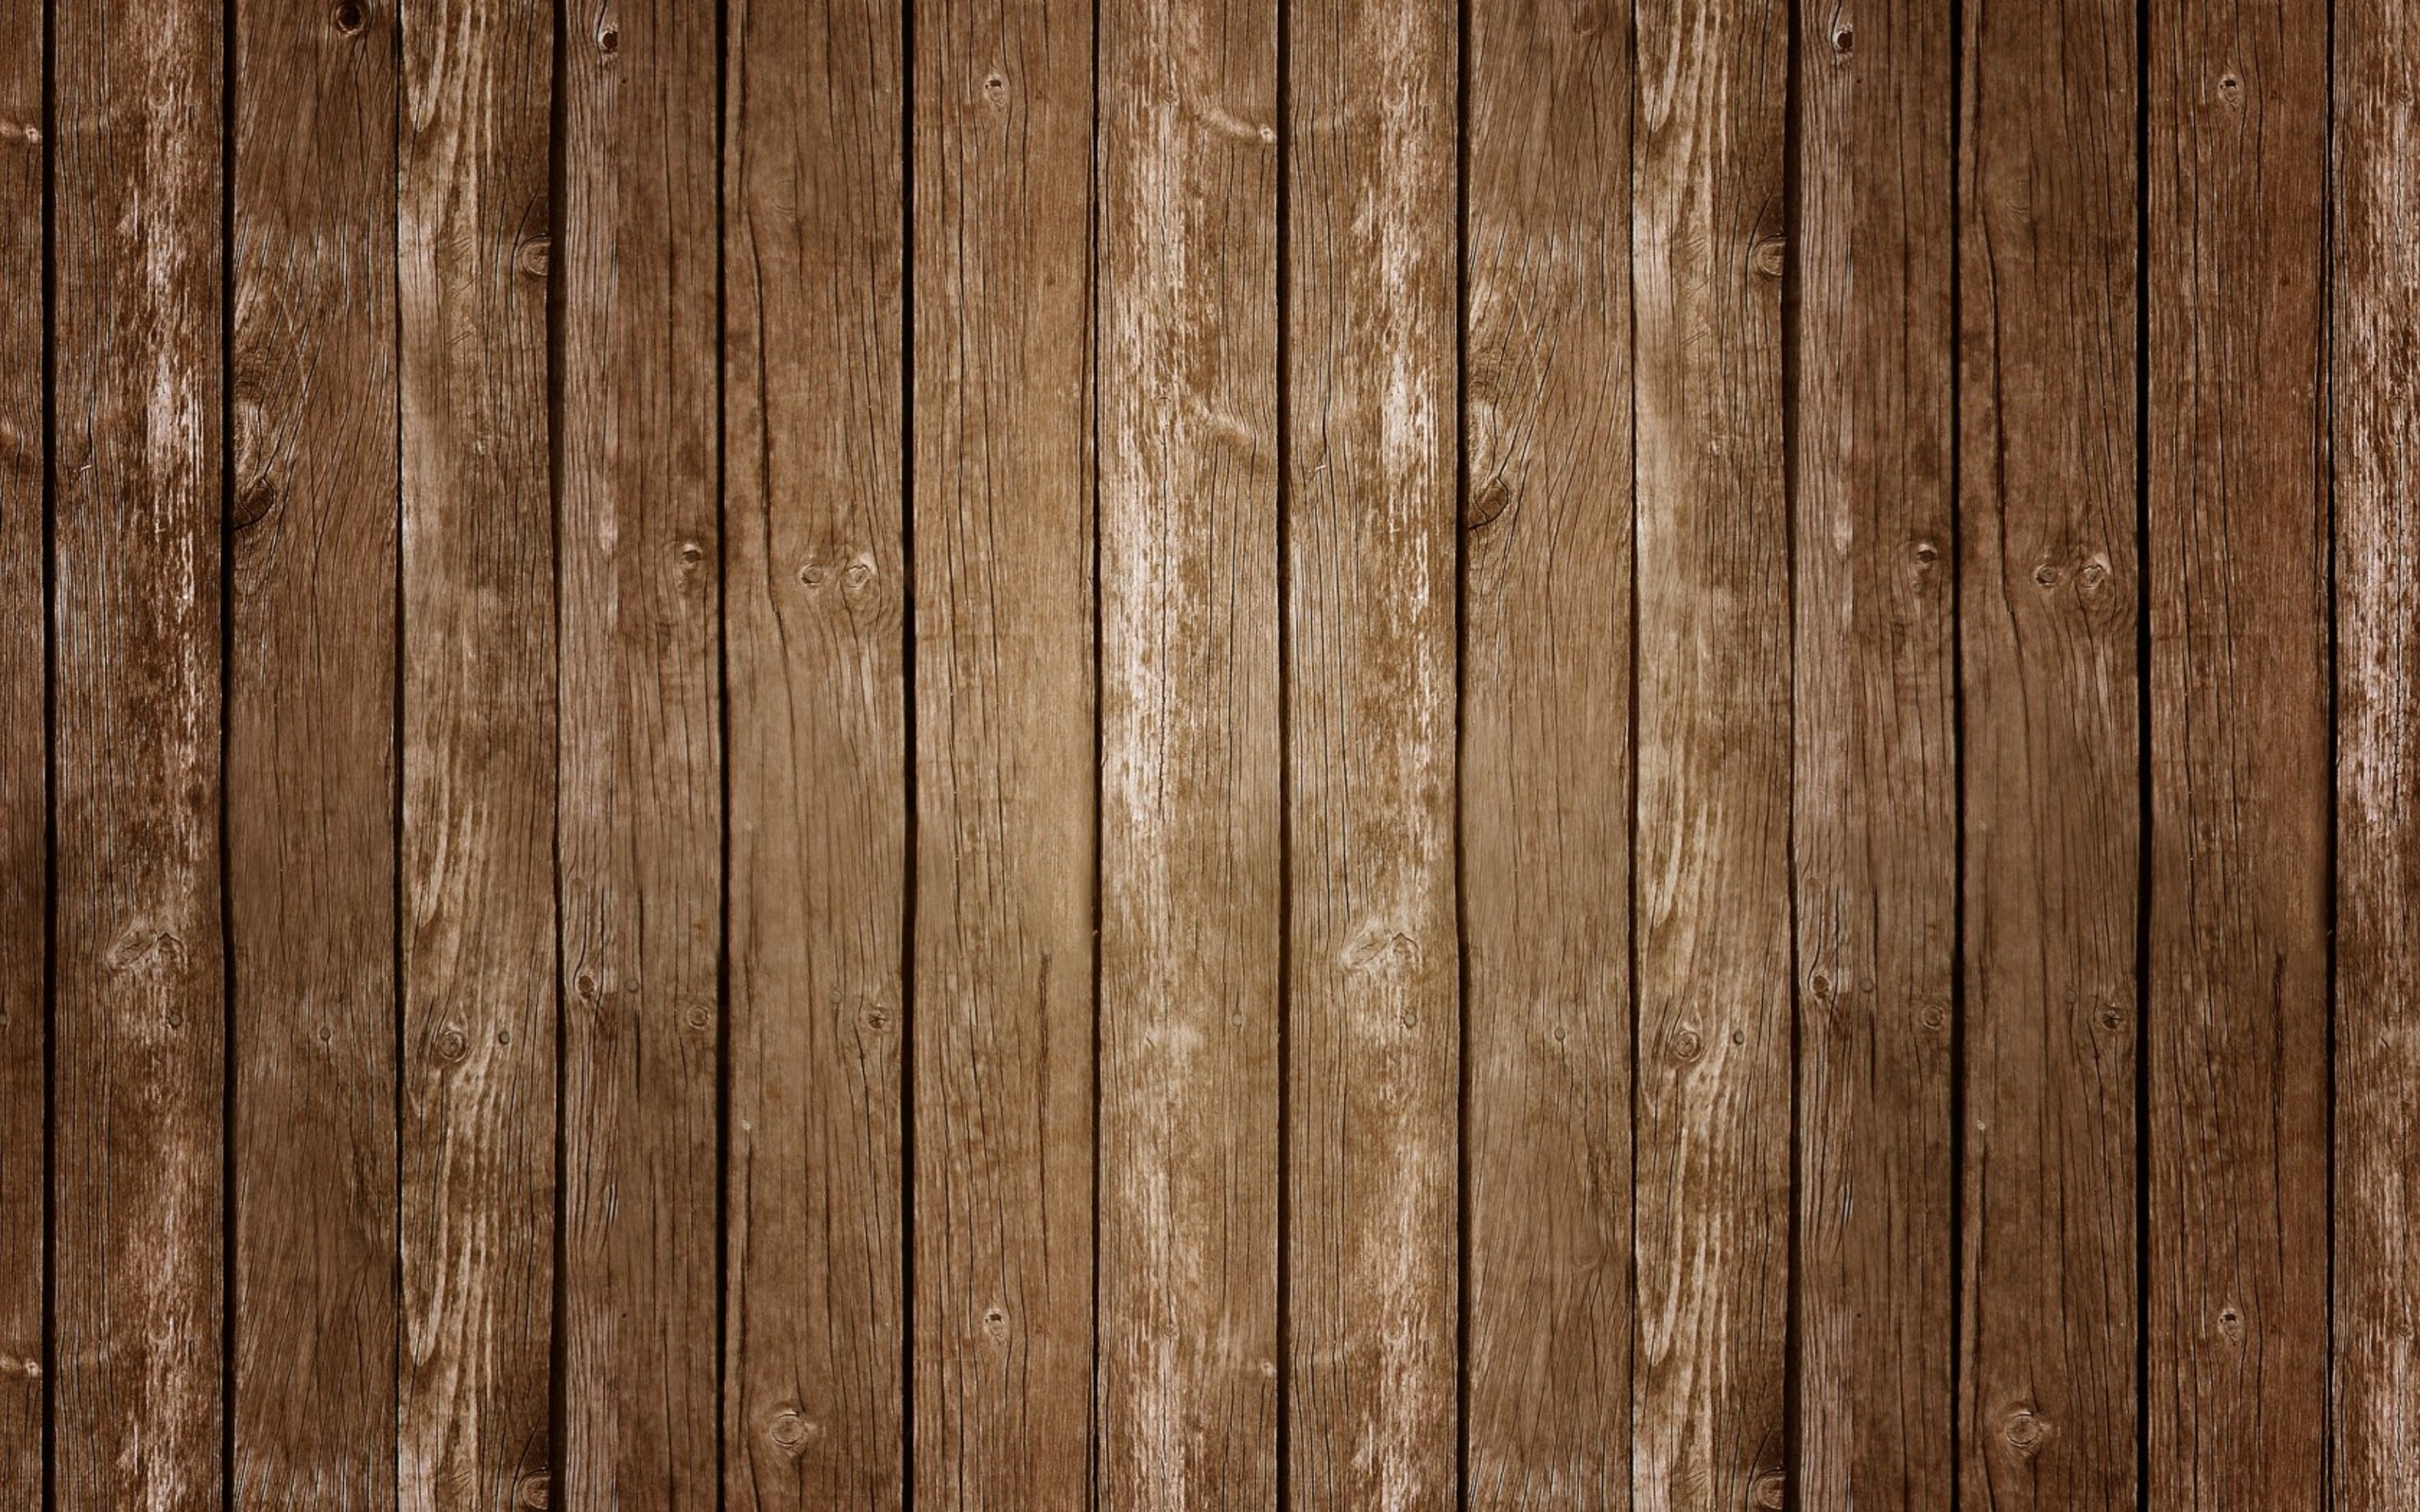 Free photo Wooden Background  Surface Rough Texture